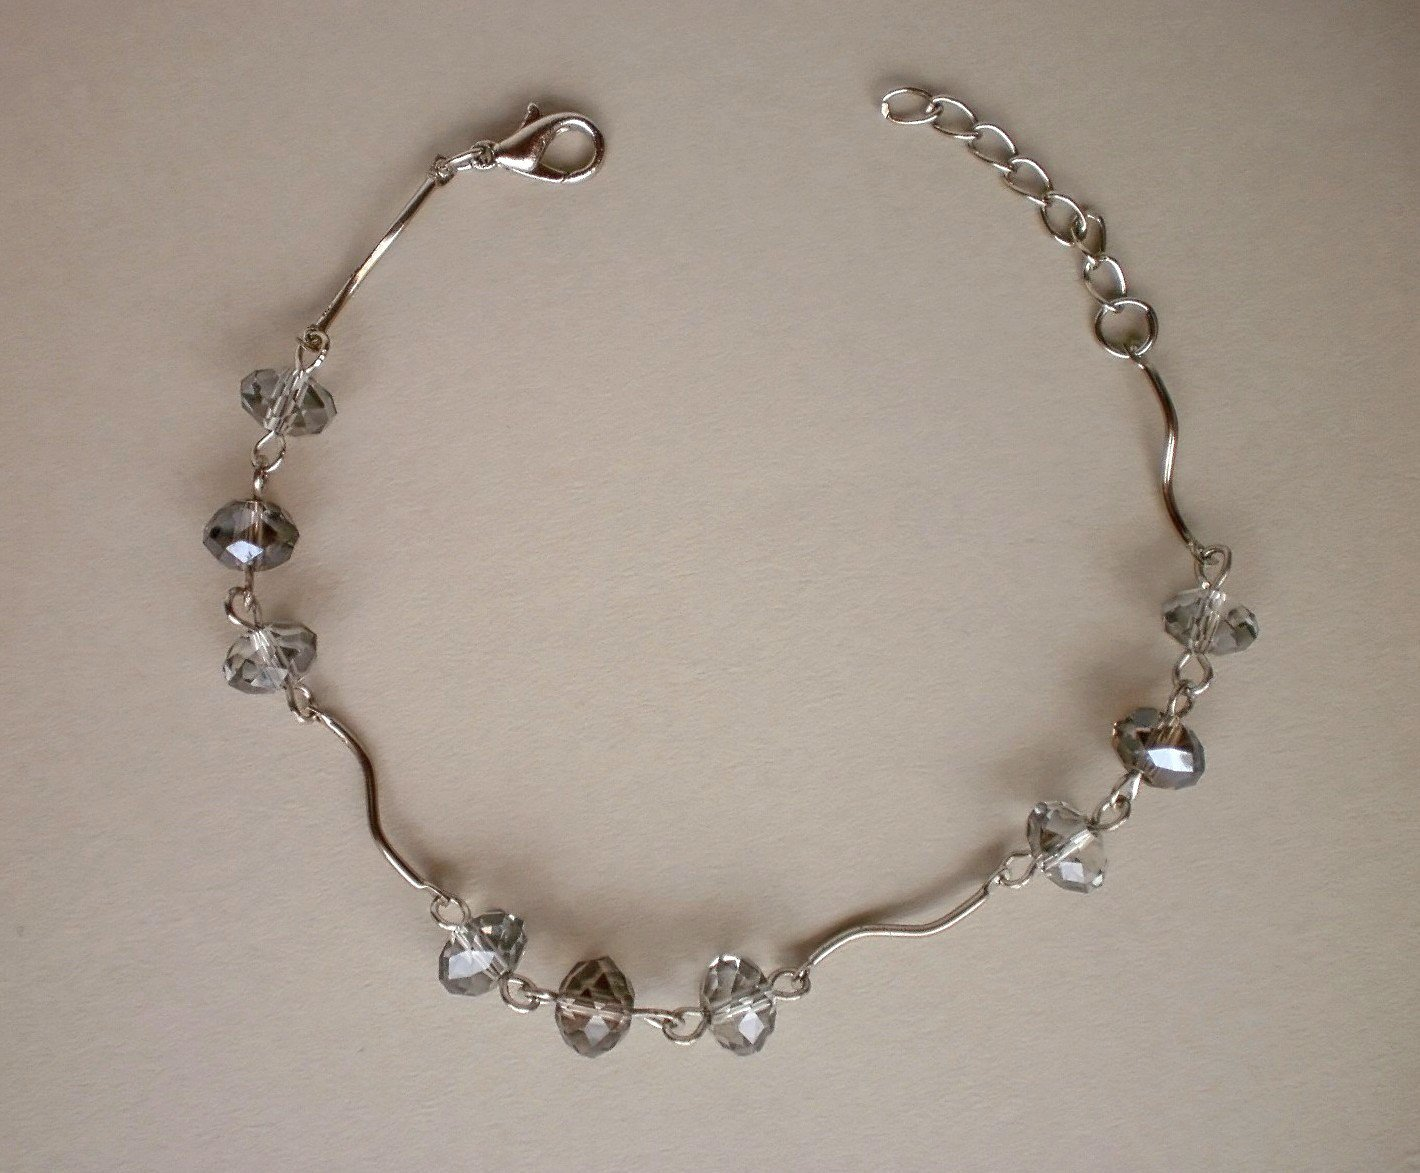 Crystal Beads Smoky Quartz / Satin Crystal Beaded Bracelet Handcrafted Designer Gift Jewelry